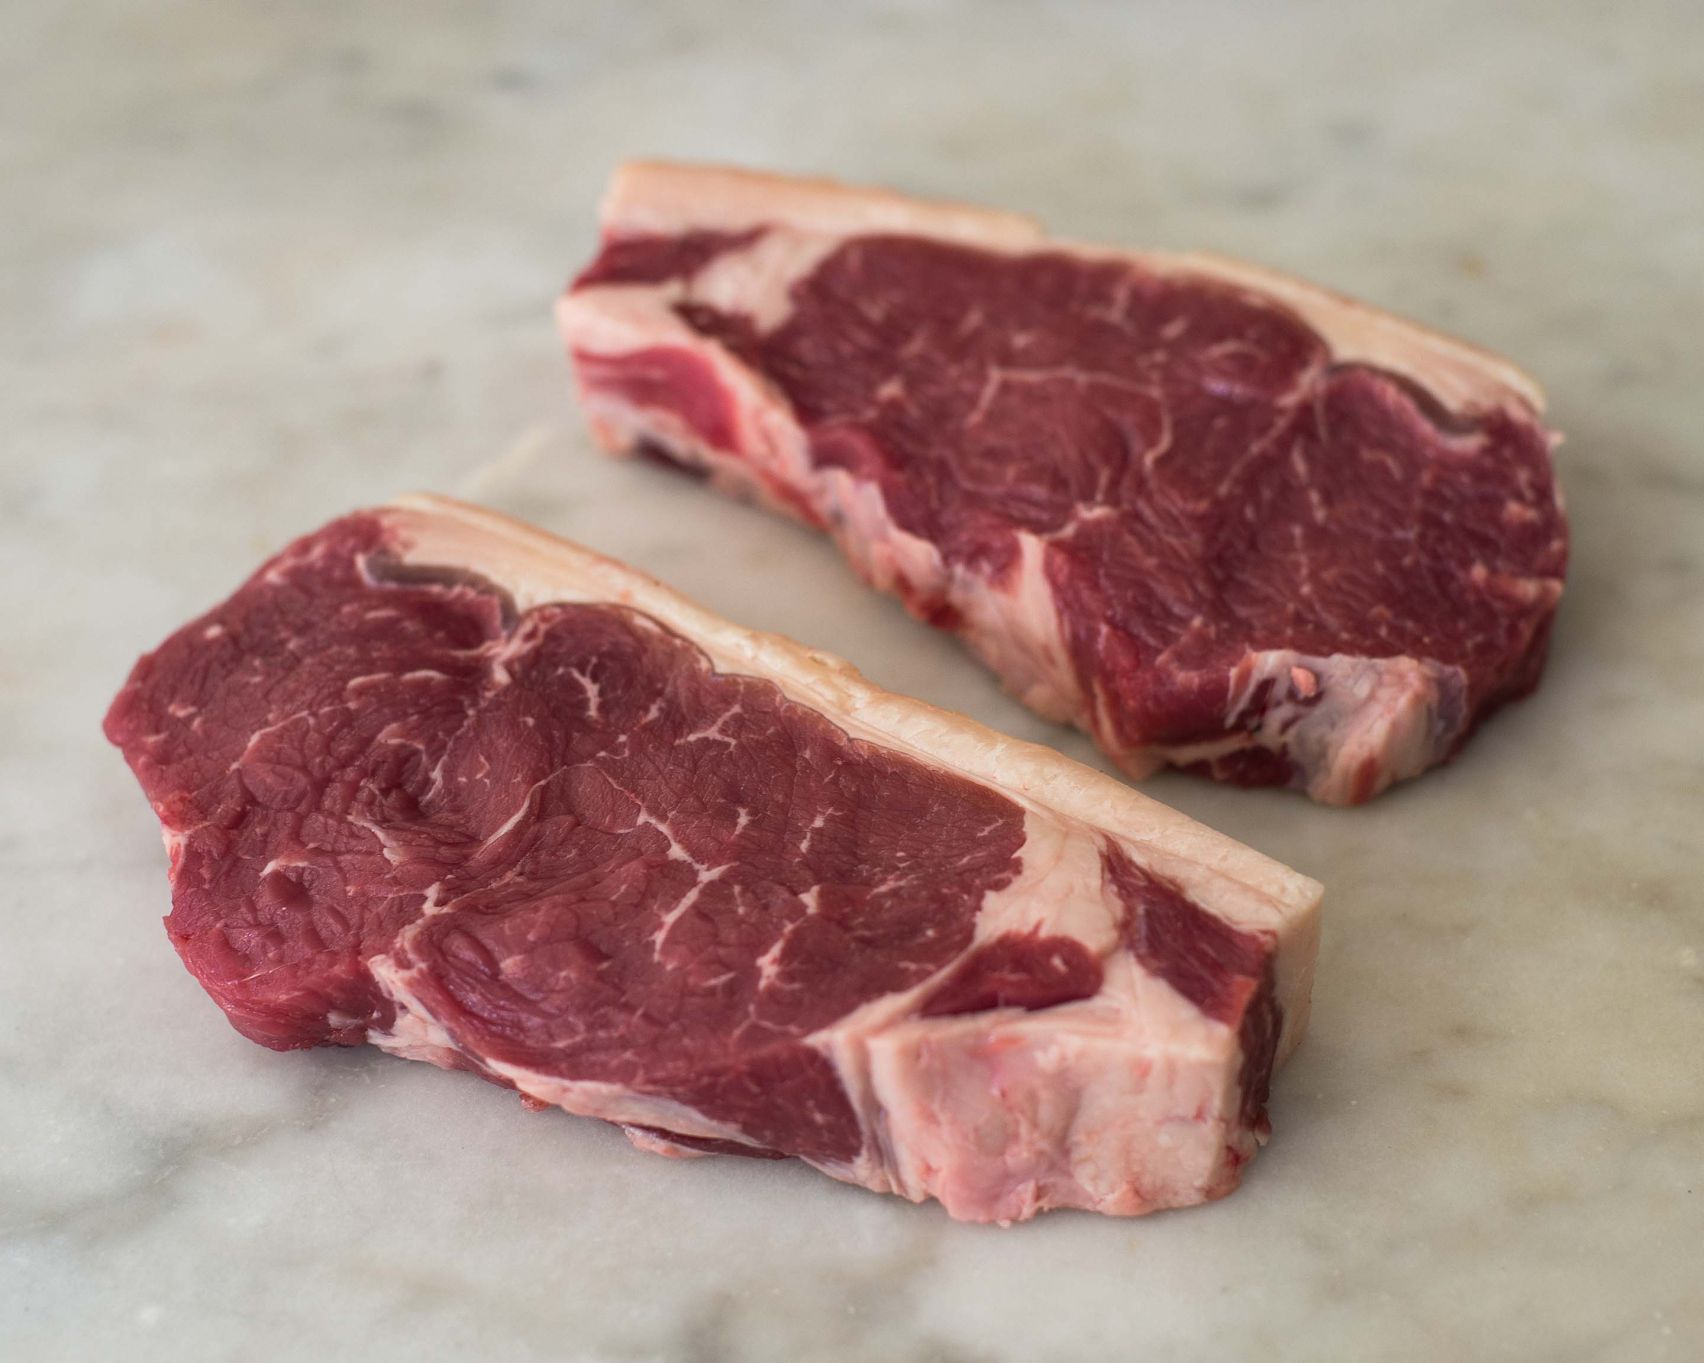 How do you like your steak, and what tips do you have for ...